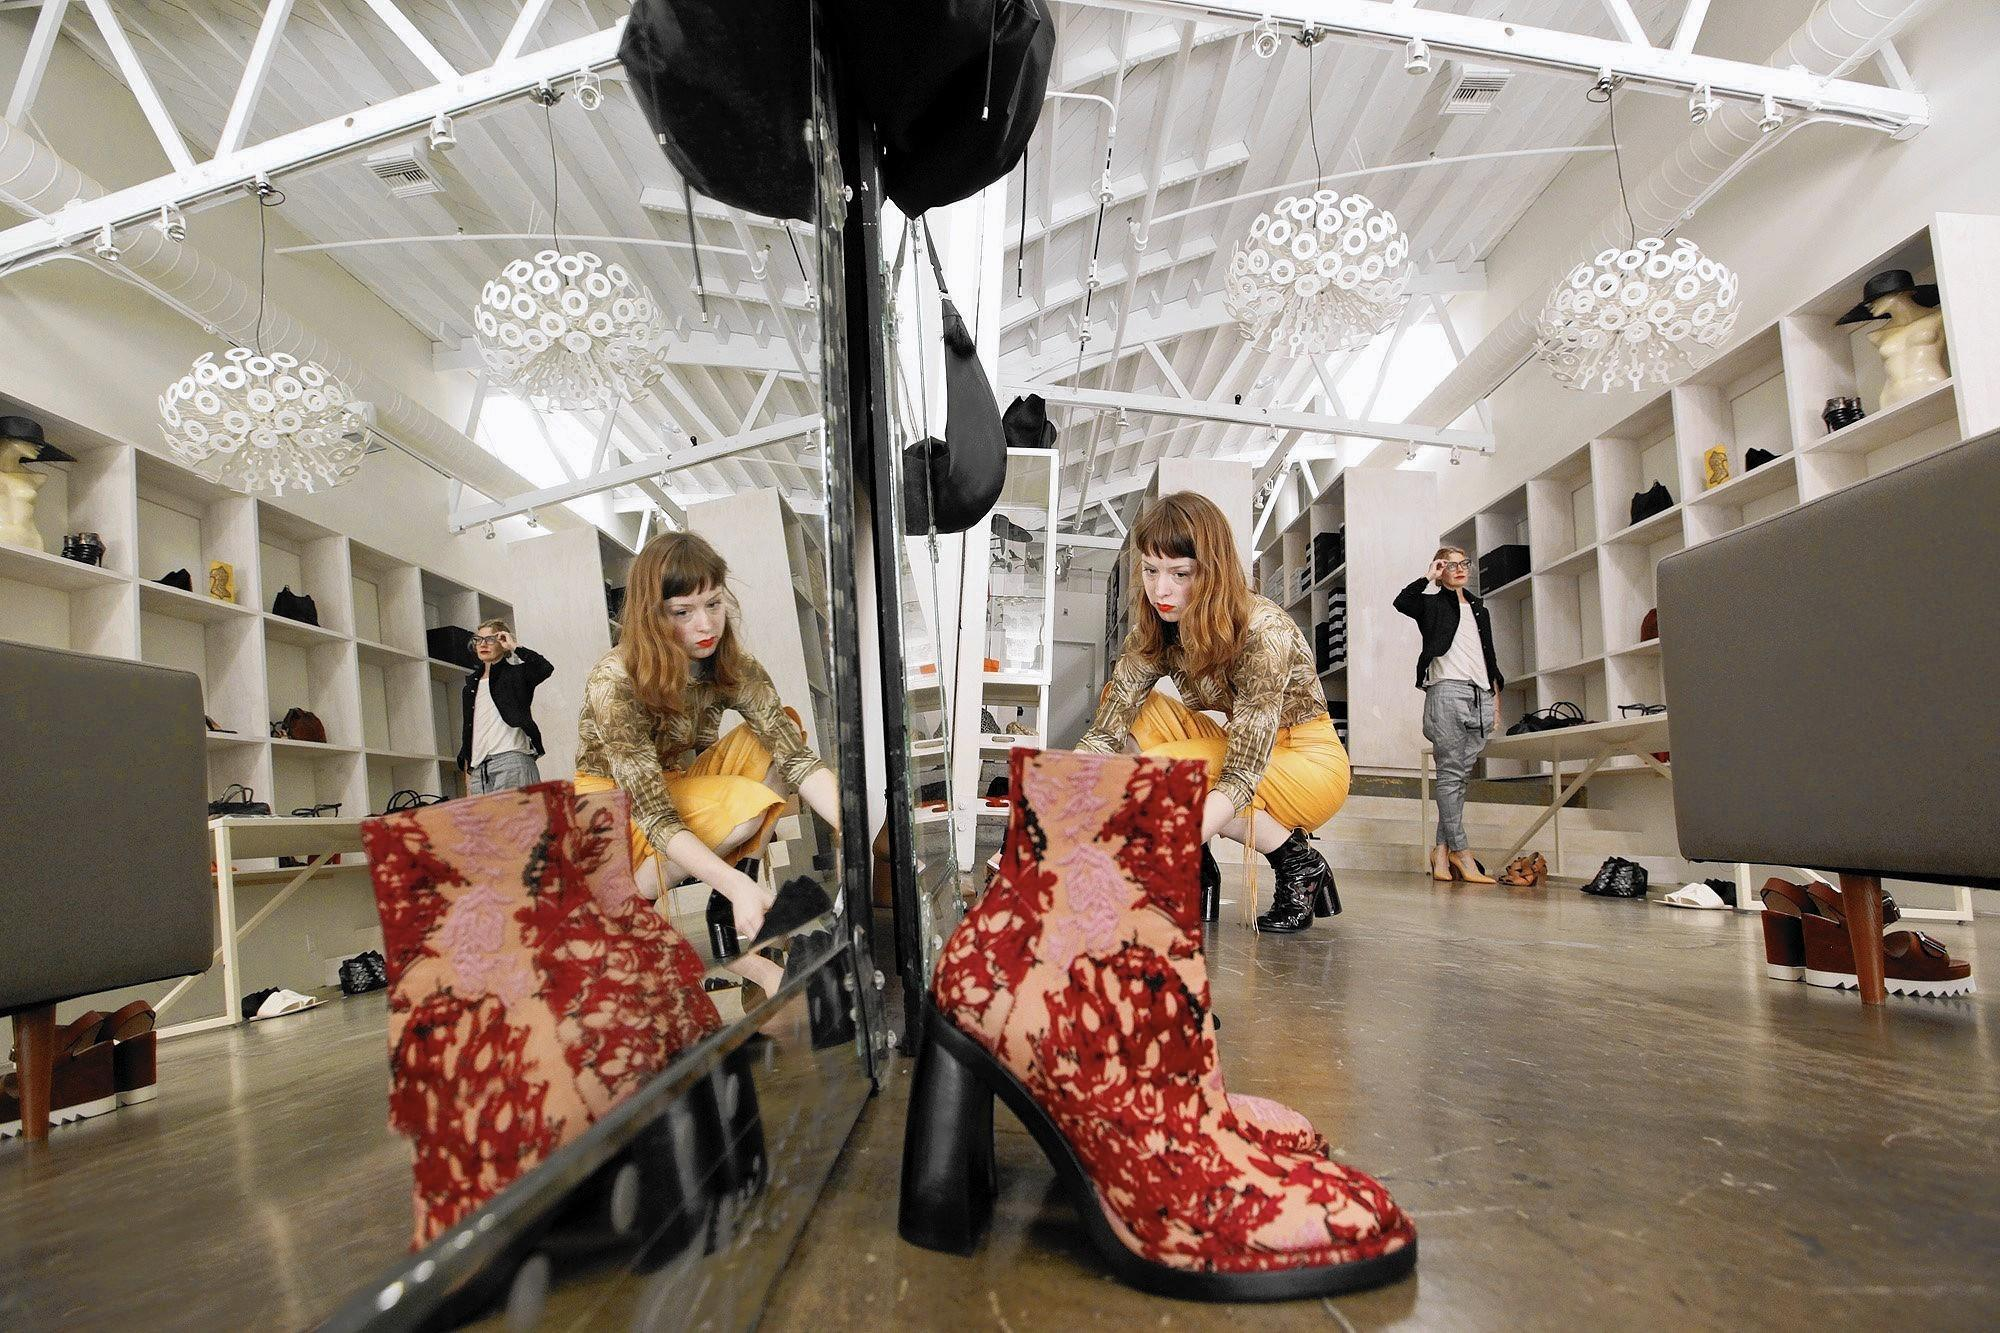 Abbot Kinney fashion shopping scene loses several stores